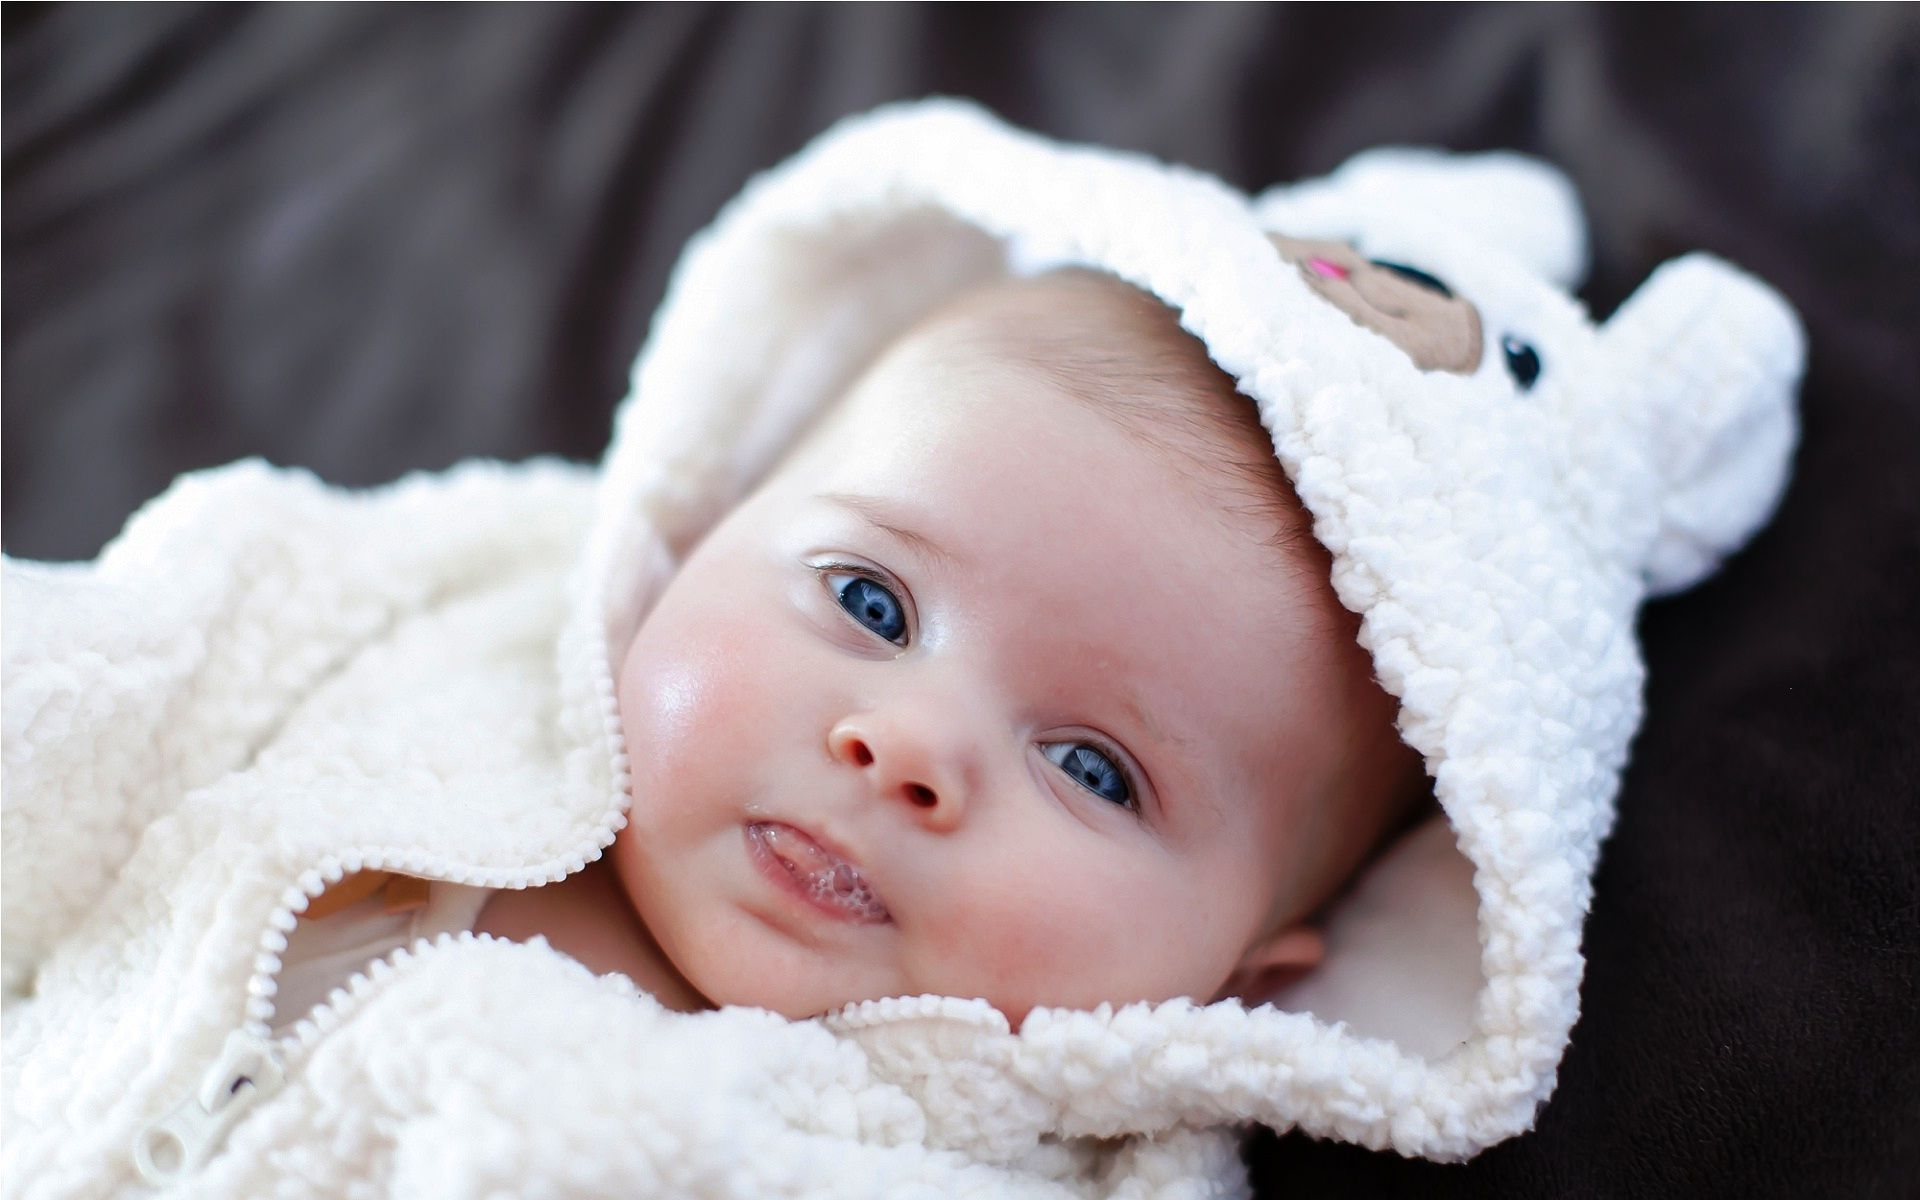 Very Cute Baby Images Hd Posted By Christopher Anderson